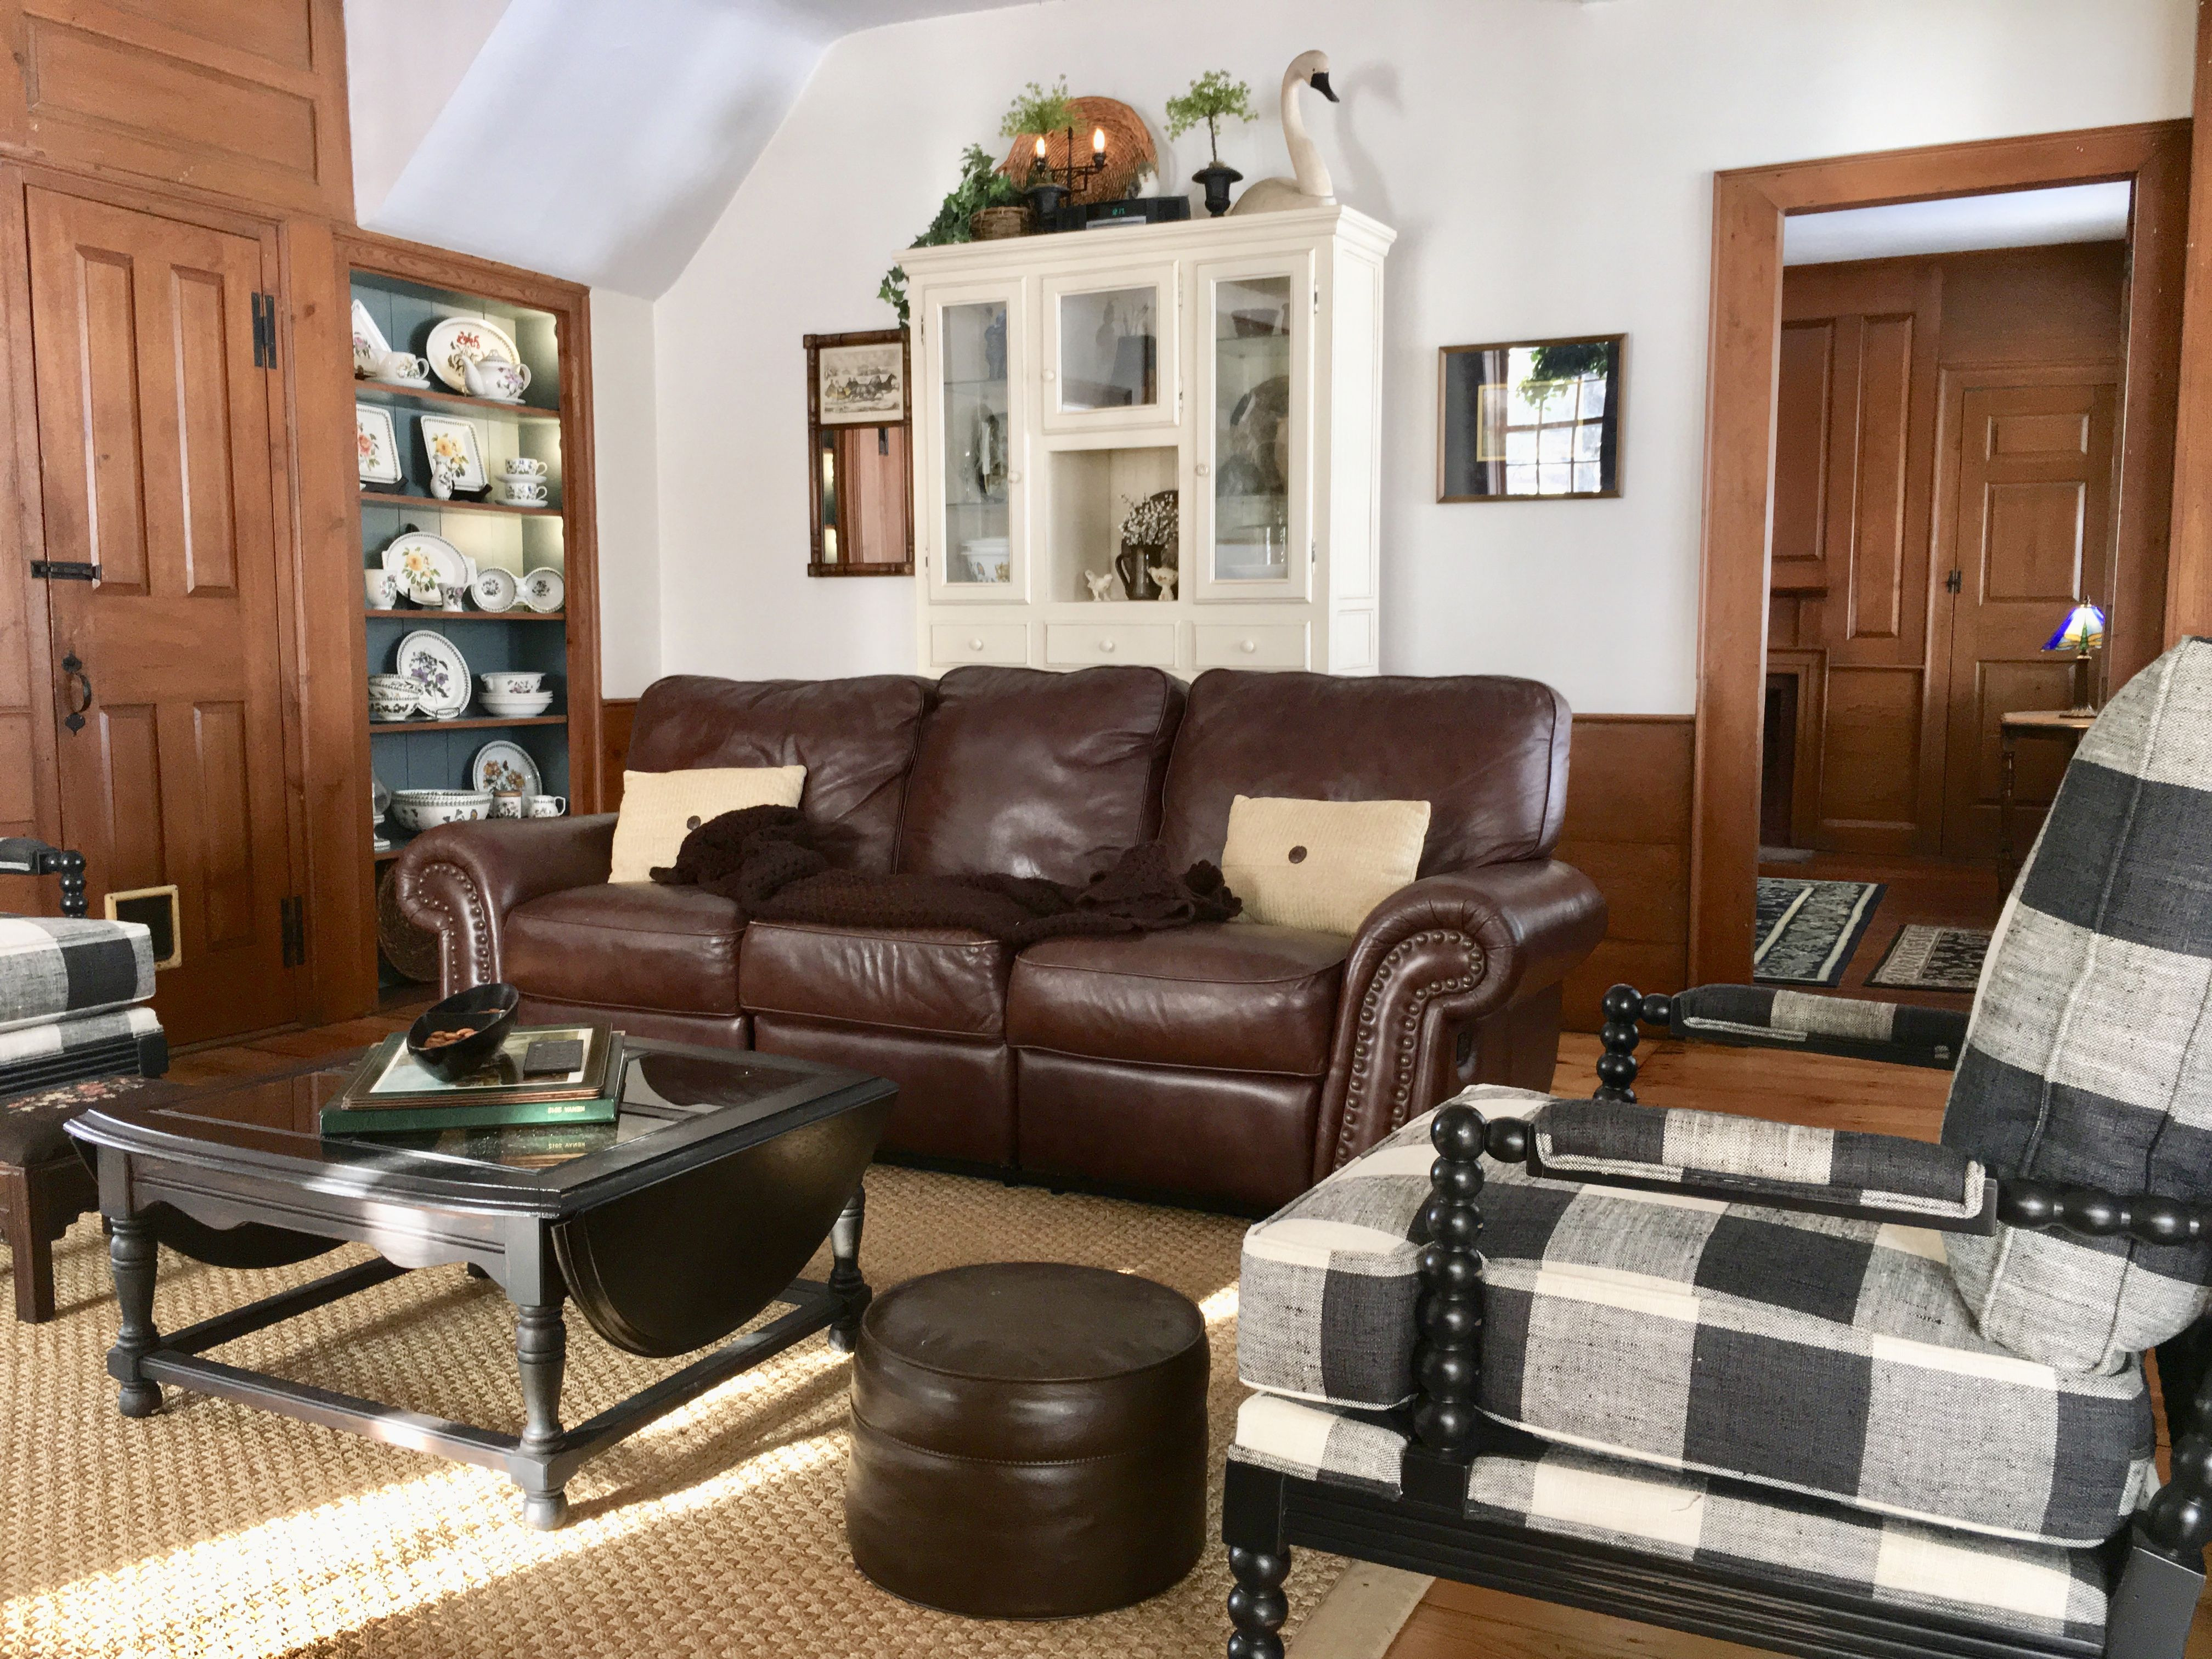 Best ideas about Family Room Couches . Save or Pin Family Room buffalo checks brown leather couch china Now.